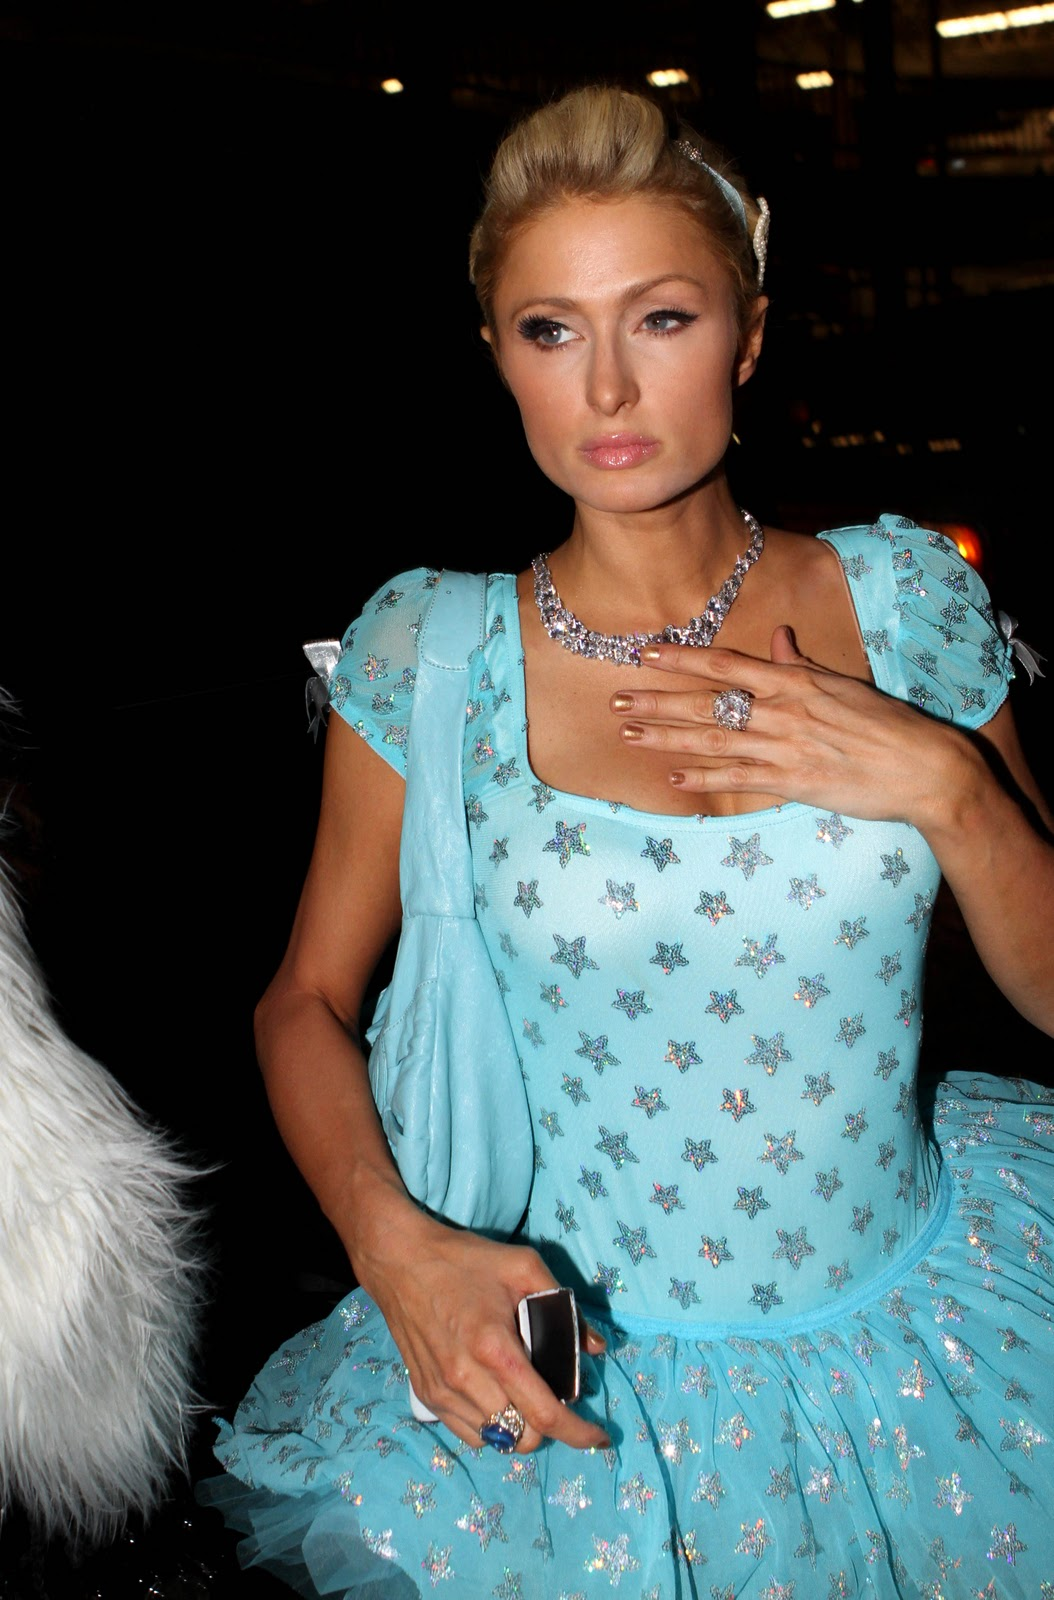 spicy hollywood model Paris Hilton body show stills